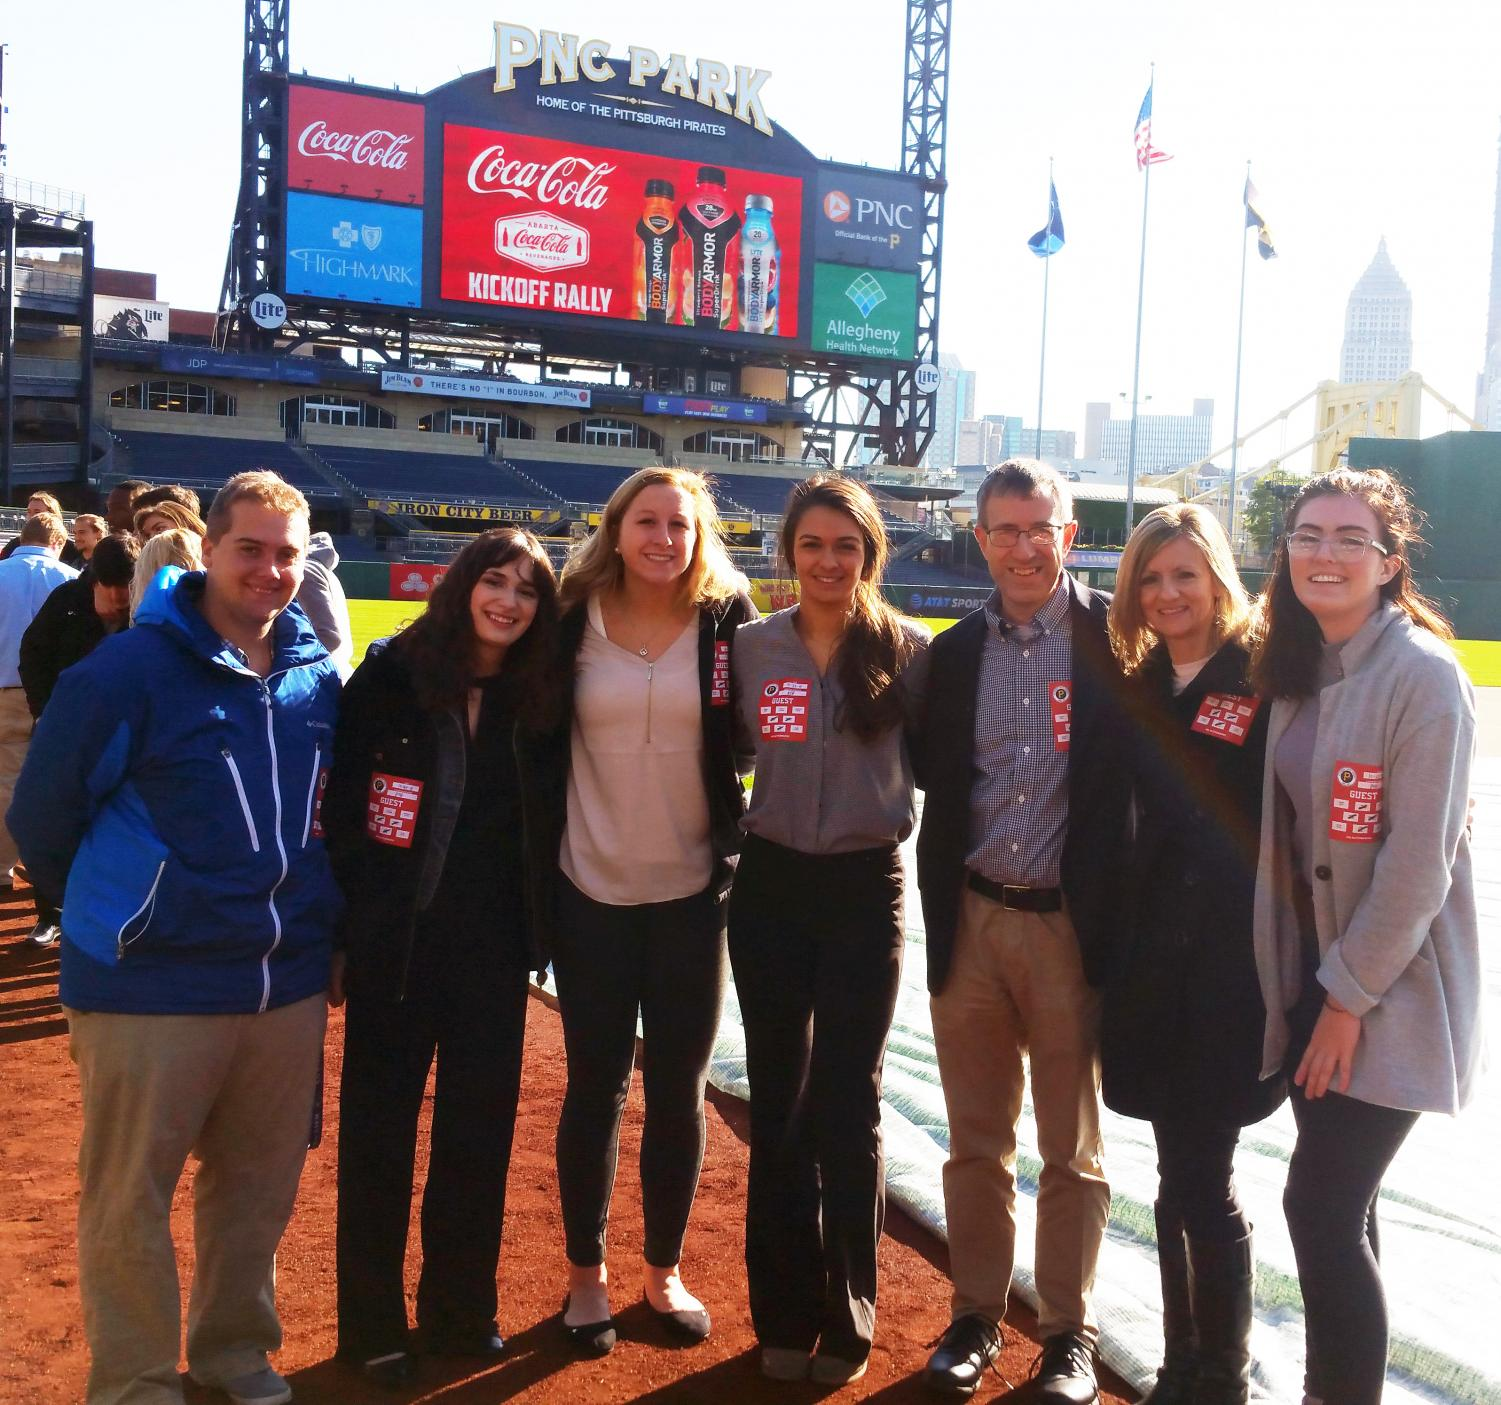 Communications students Andrew Nash, Anna Baughman, Haley Thomas, Marina Misitano and Olivia Ford and Drs. Pat Farabaugh and Kelly Rhodes enjoy PNC field.